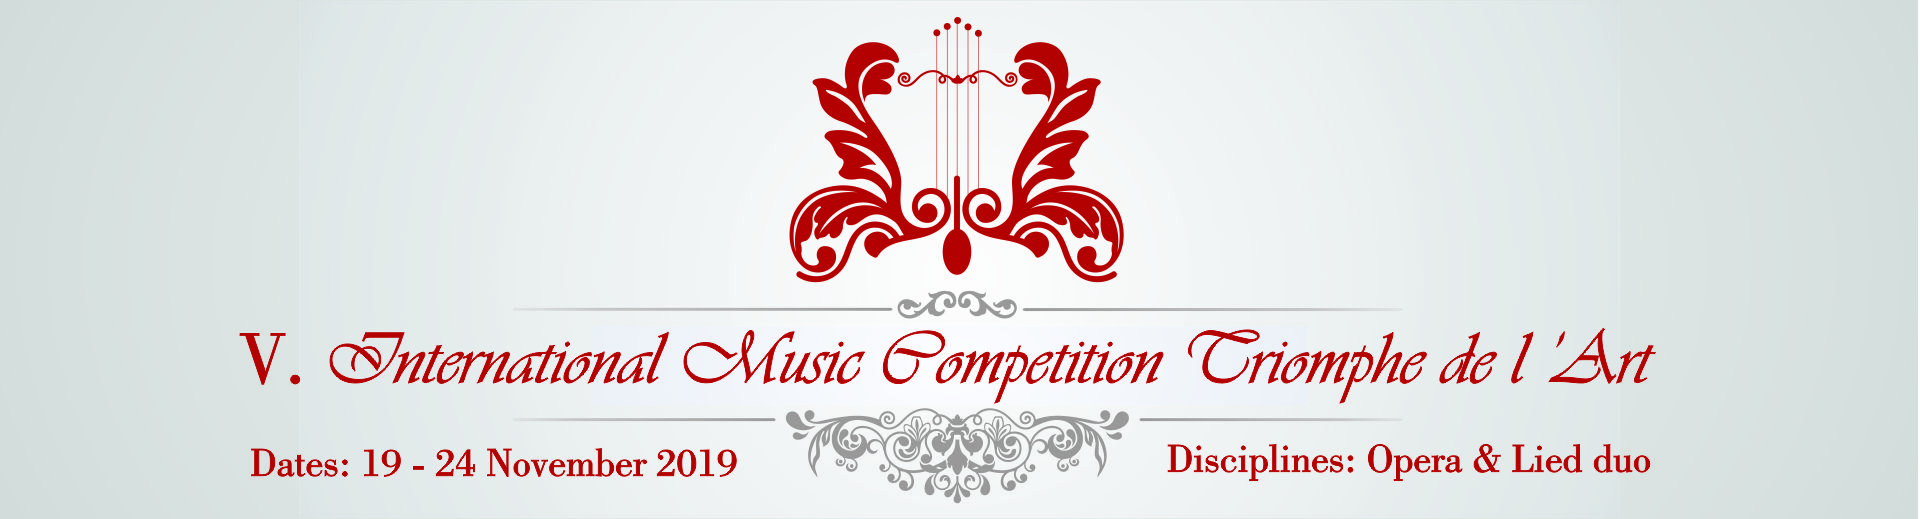 V. International Music Competition Triomphe de l'Art